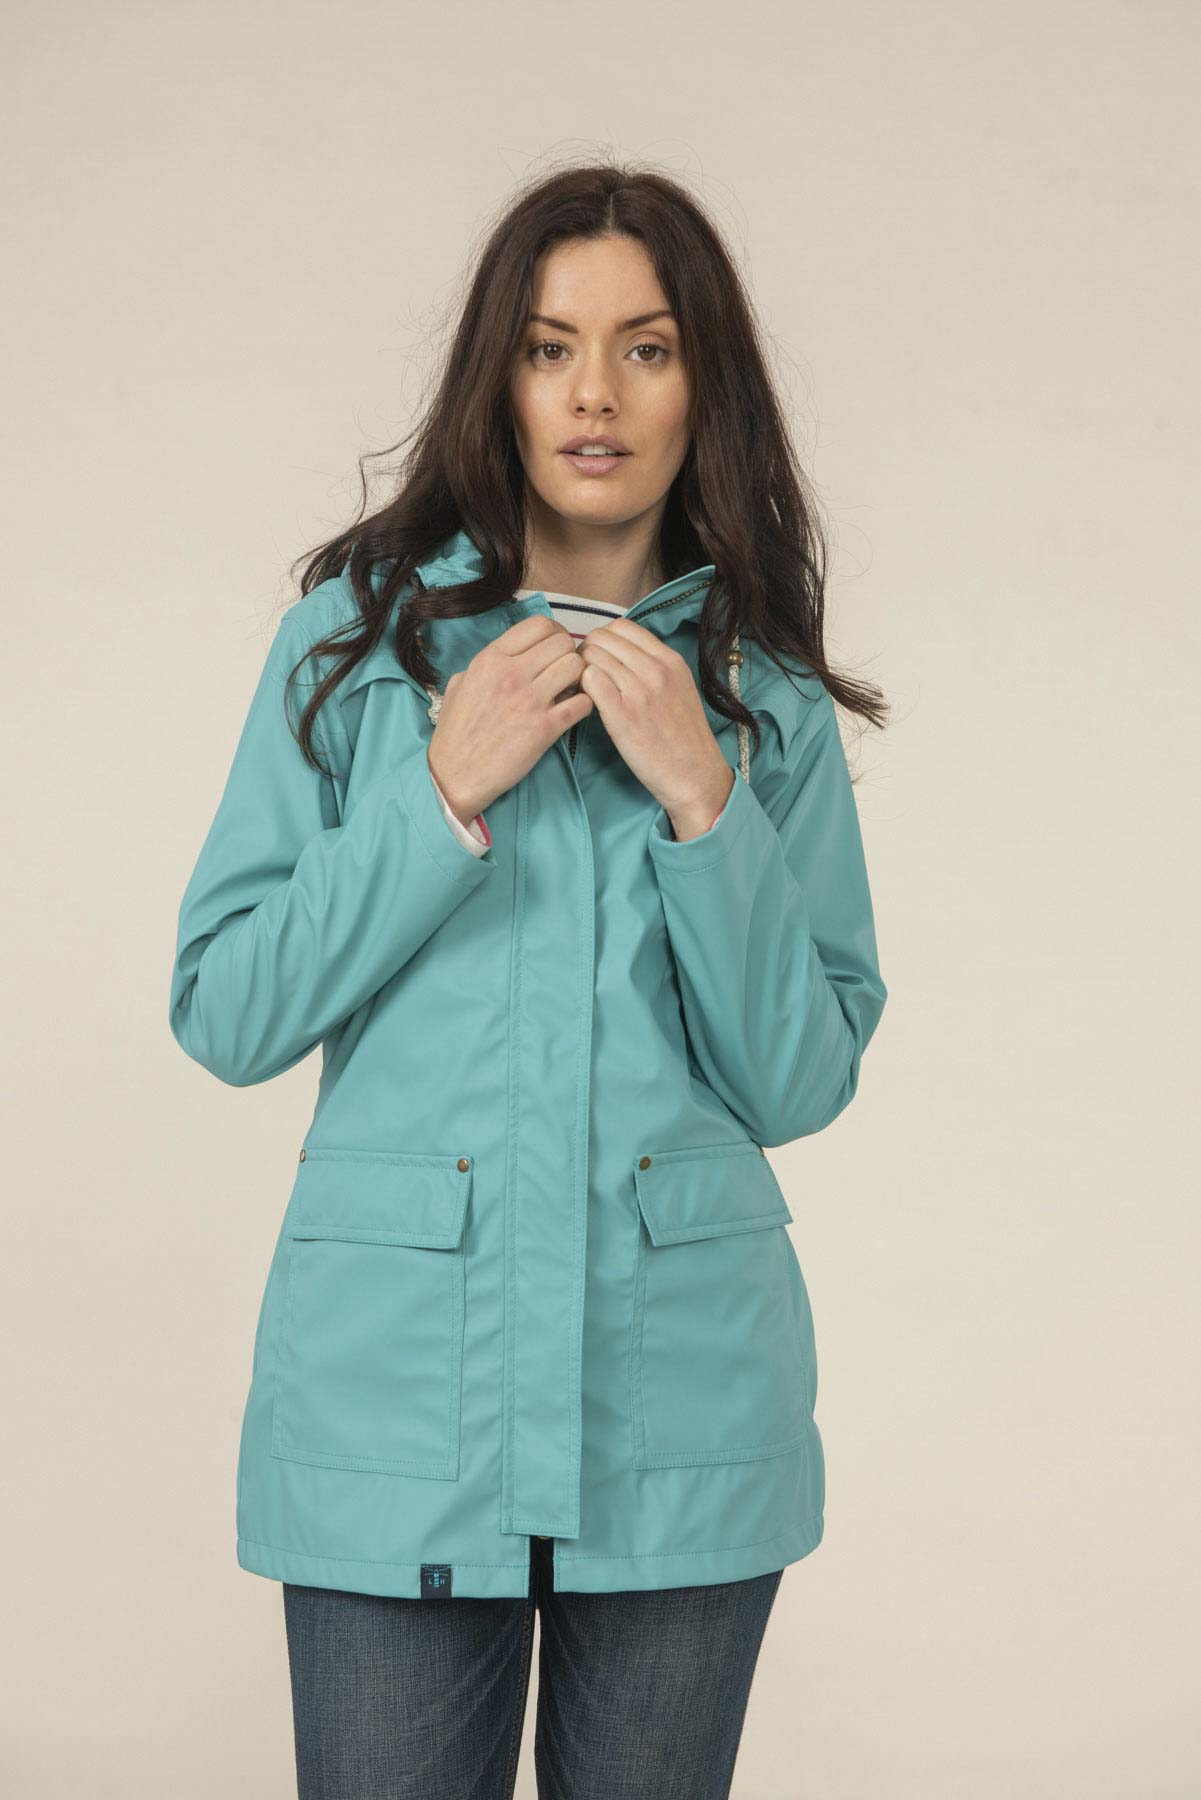 Women's Coats - Bowline - Teal Raincoat